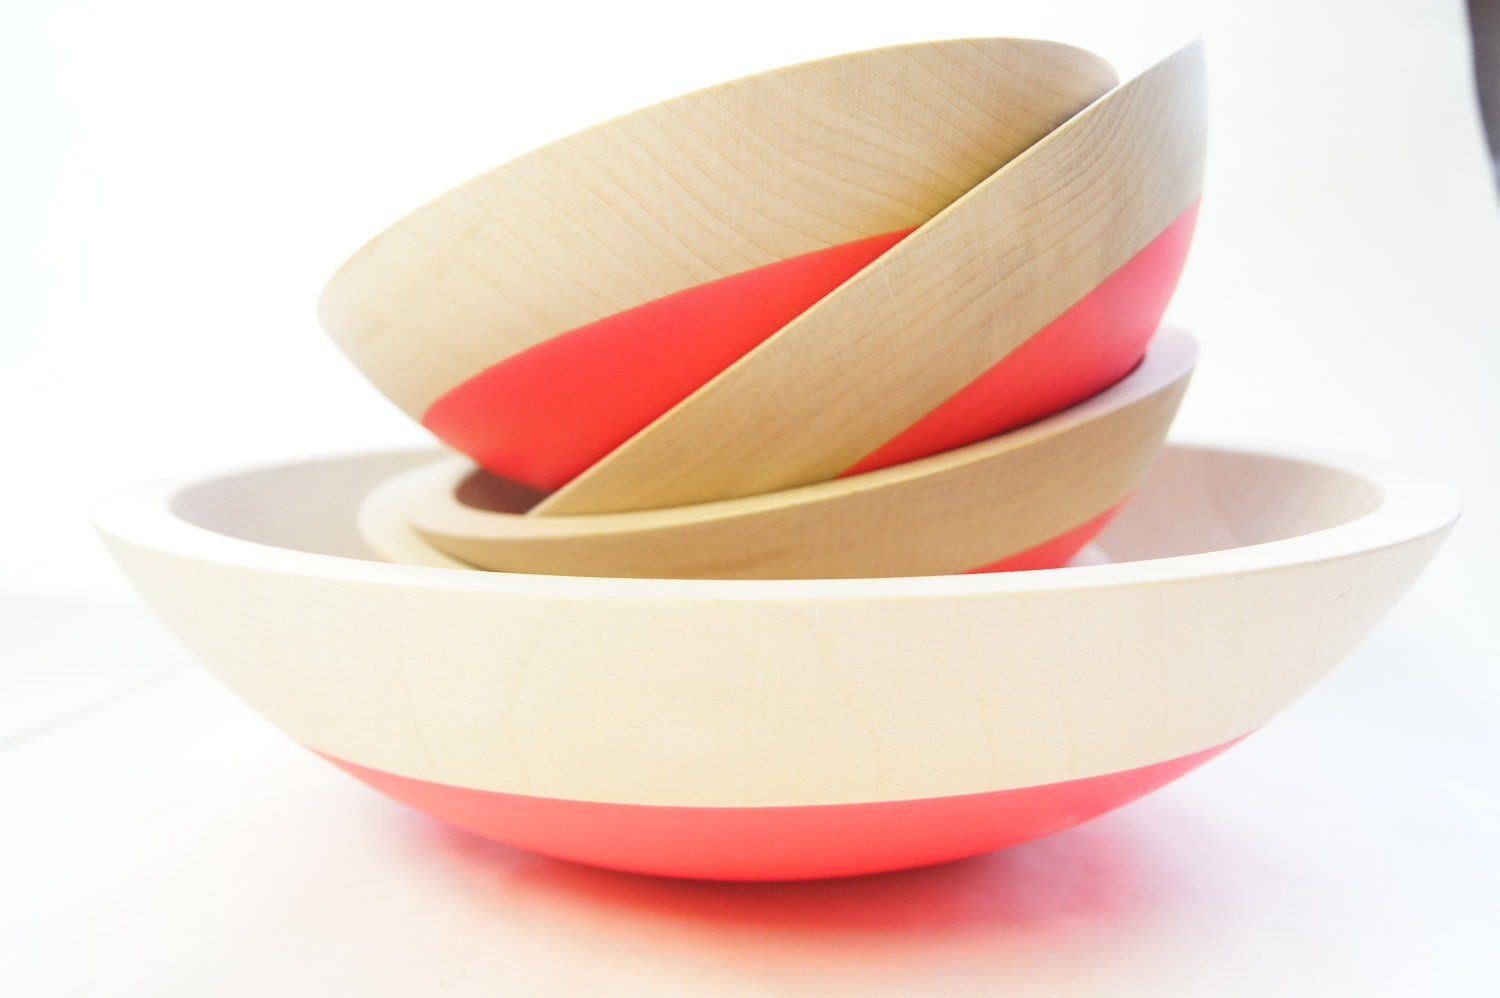 Wooden Salad Bowl Set of 5, Neon Pink